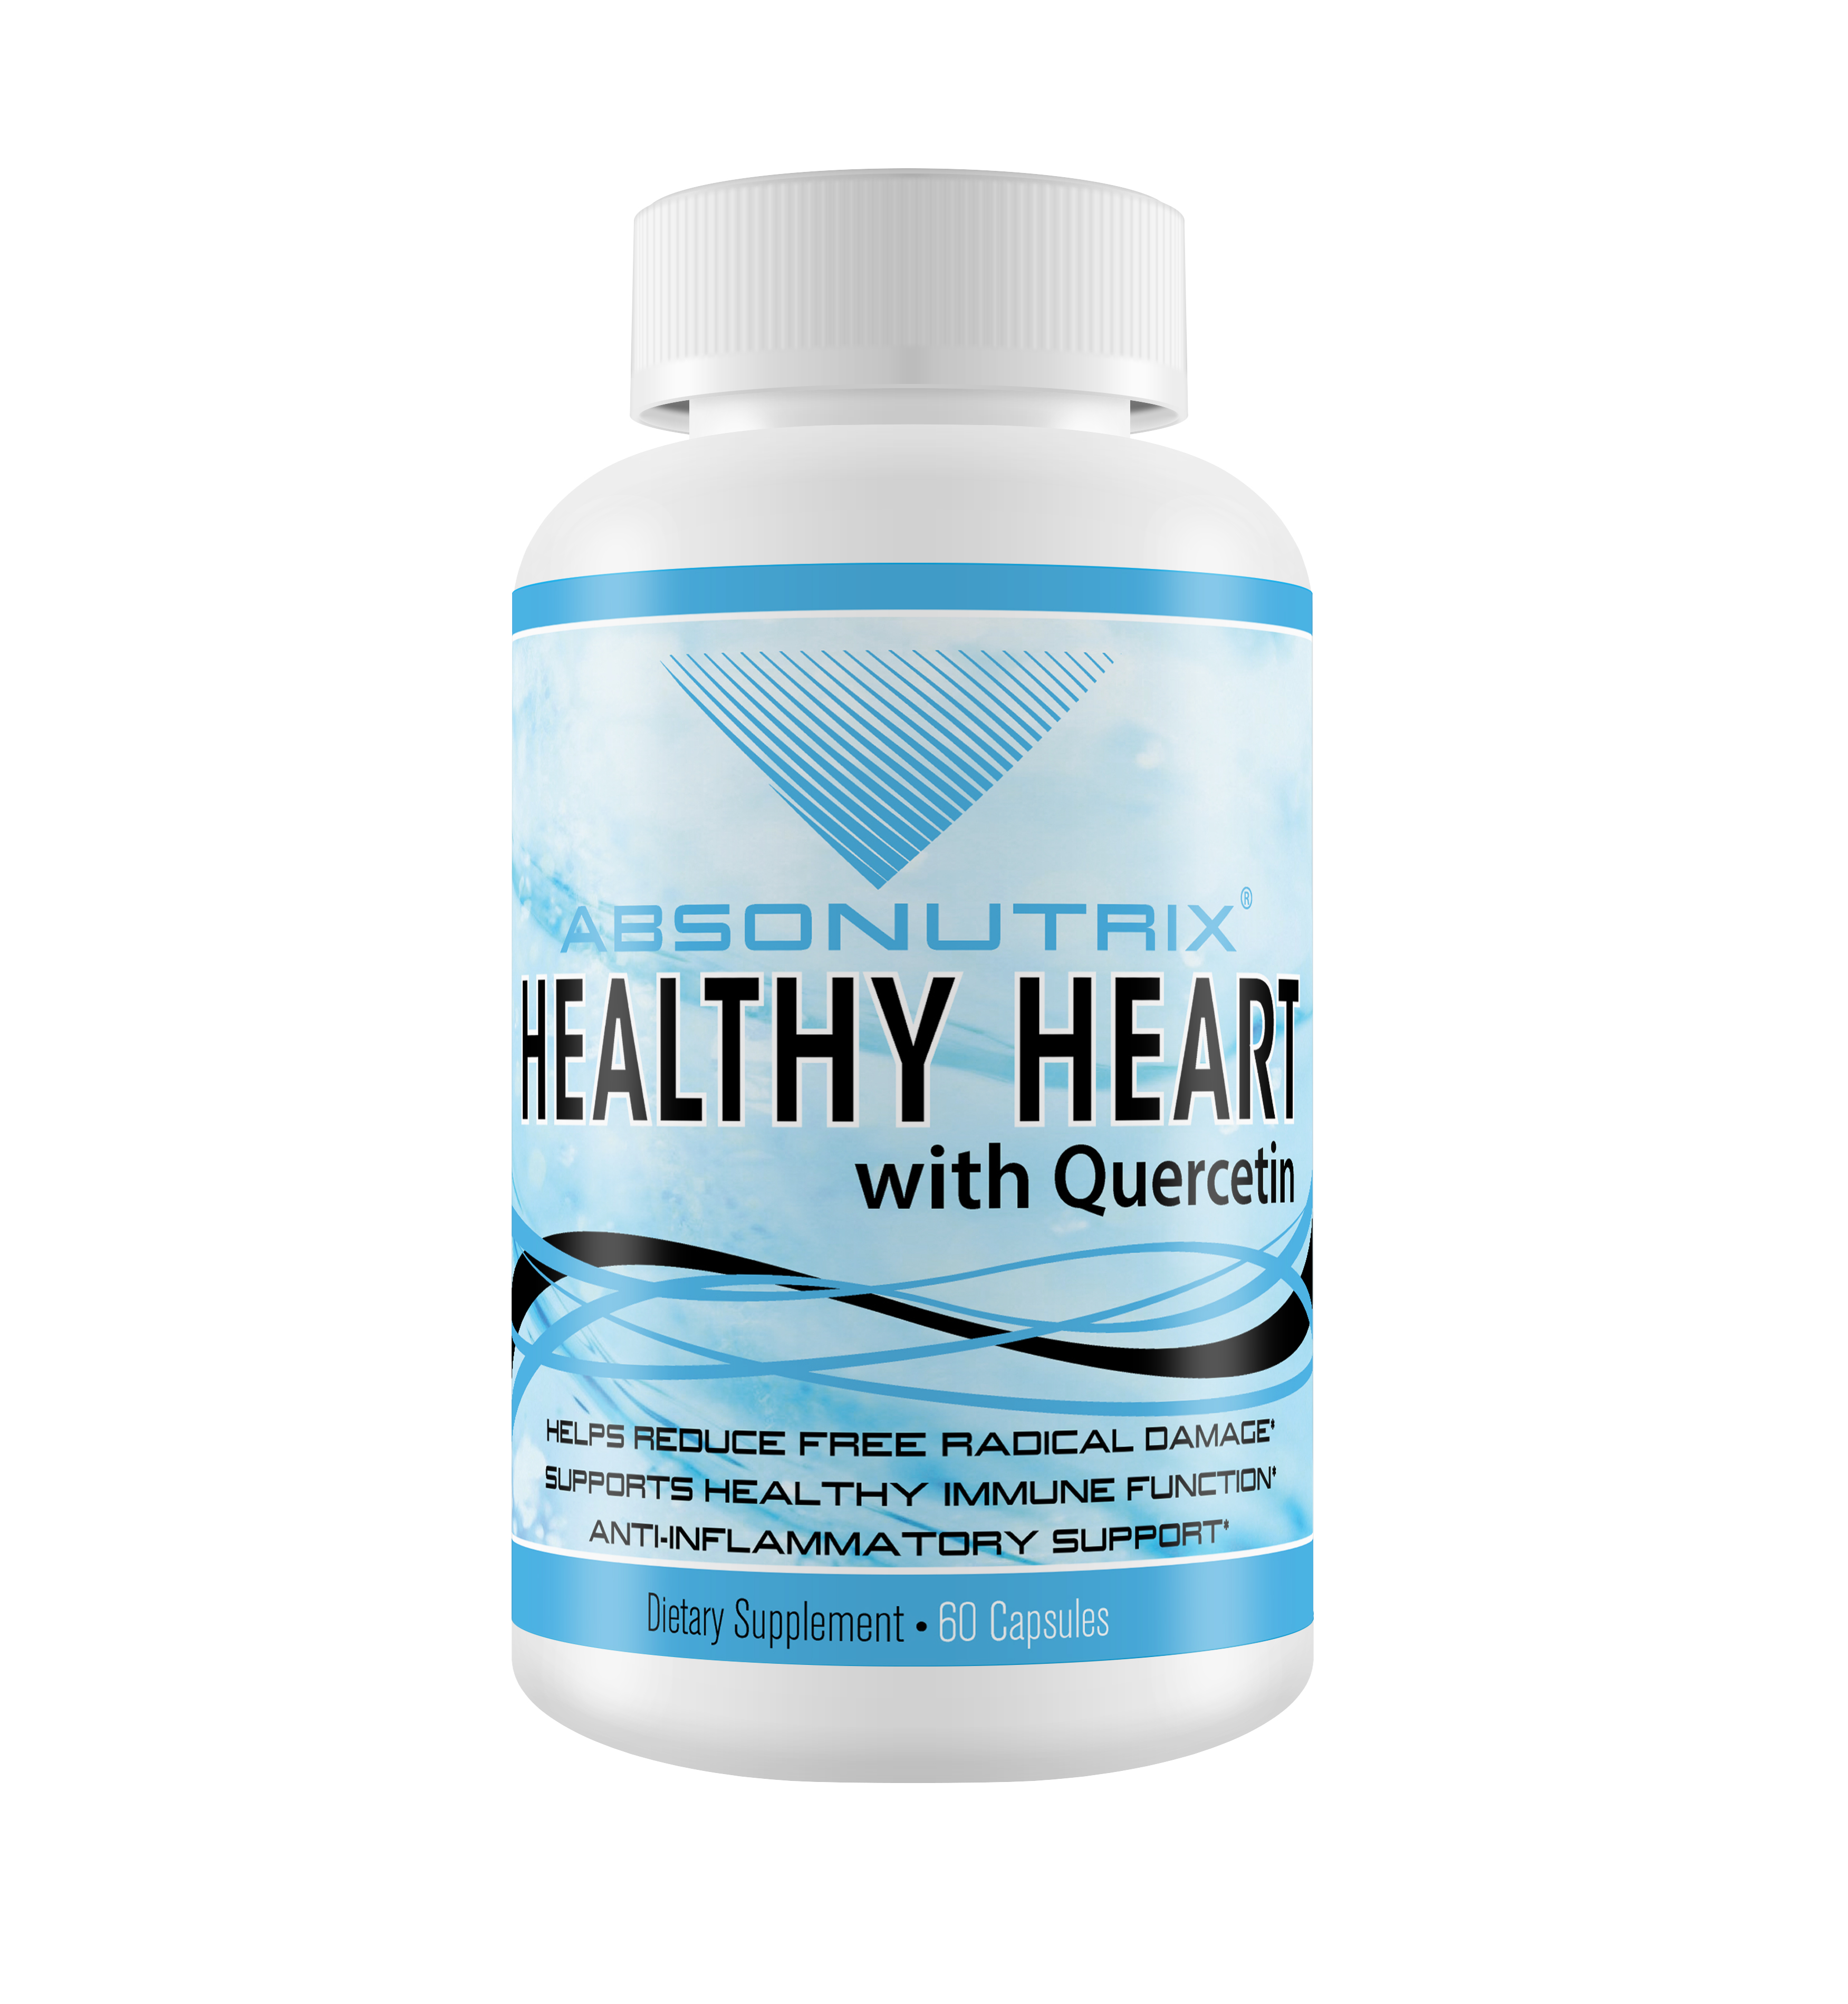 Absonutrix Health Heart with quercetin